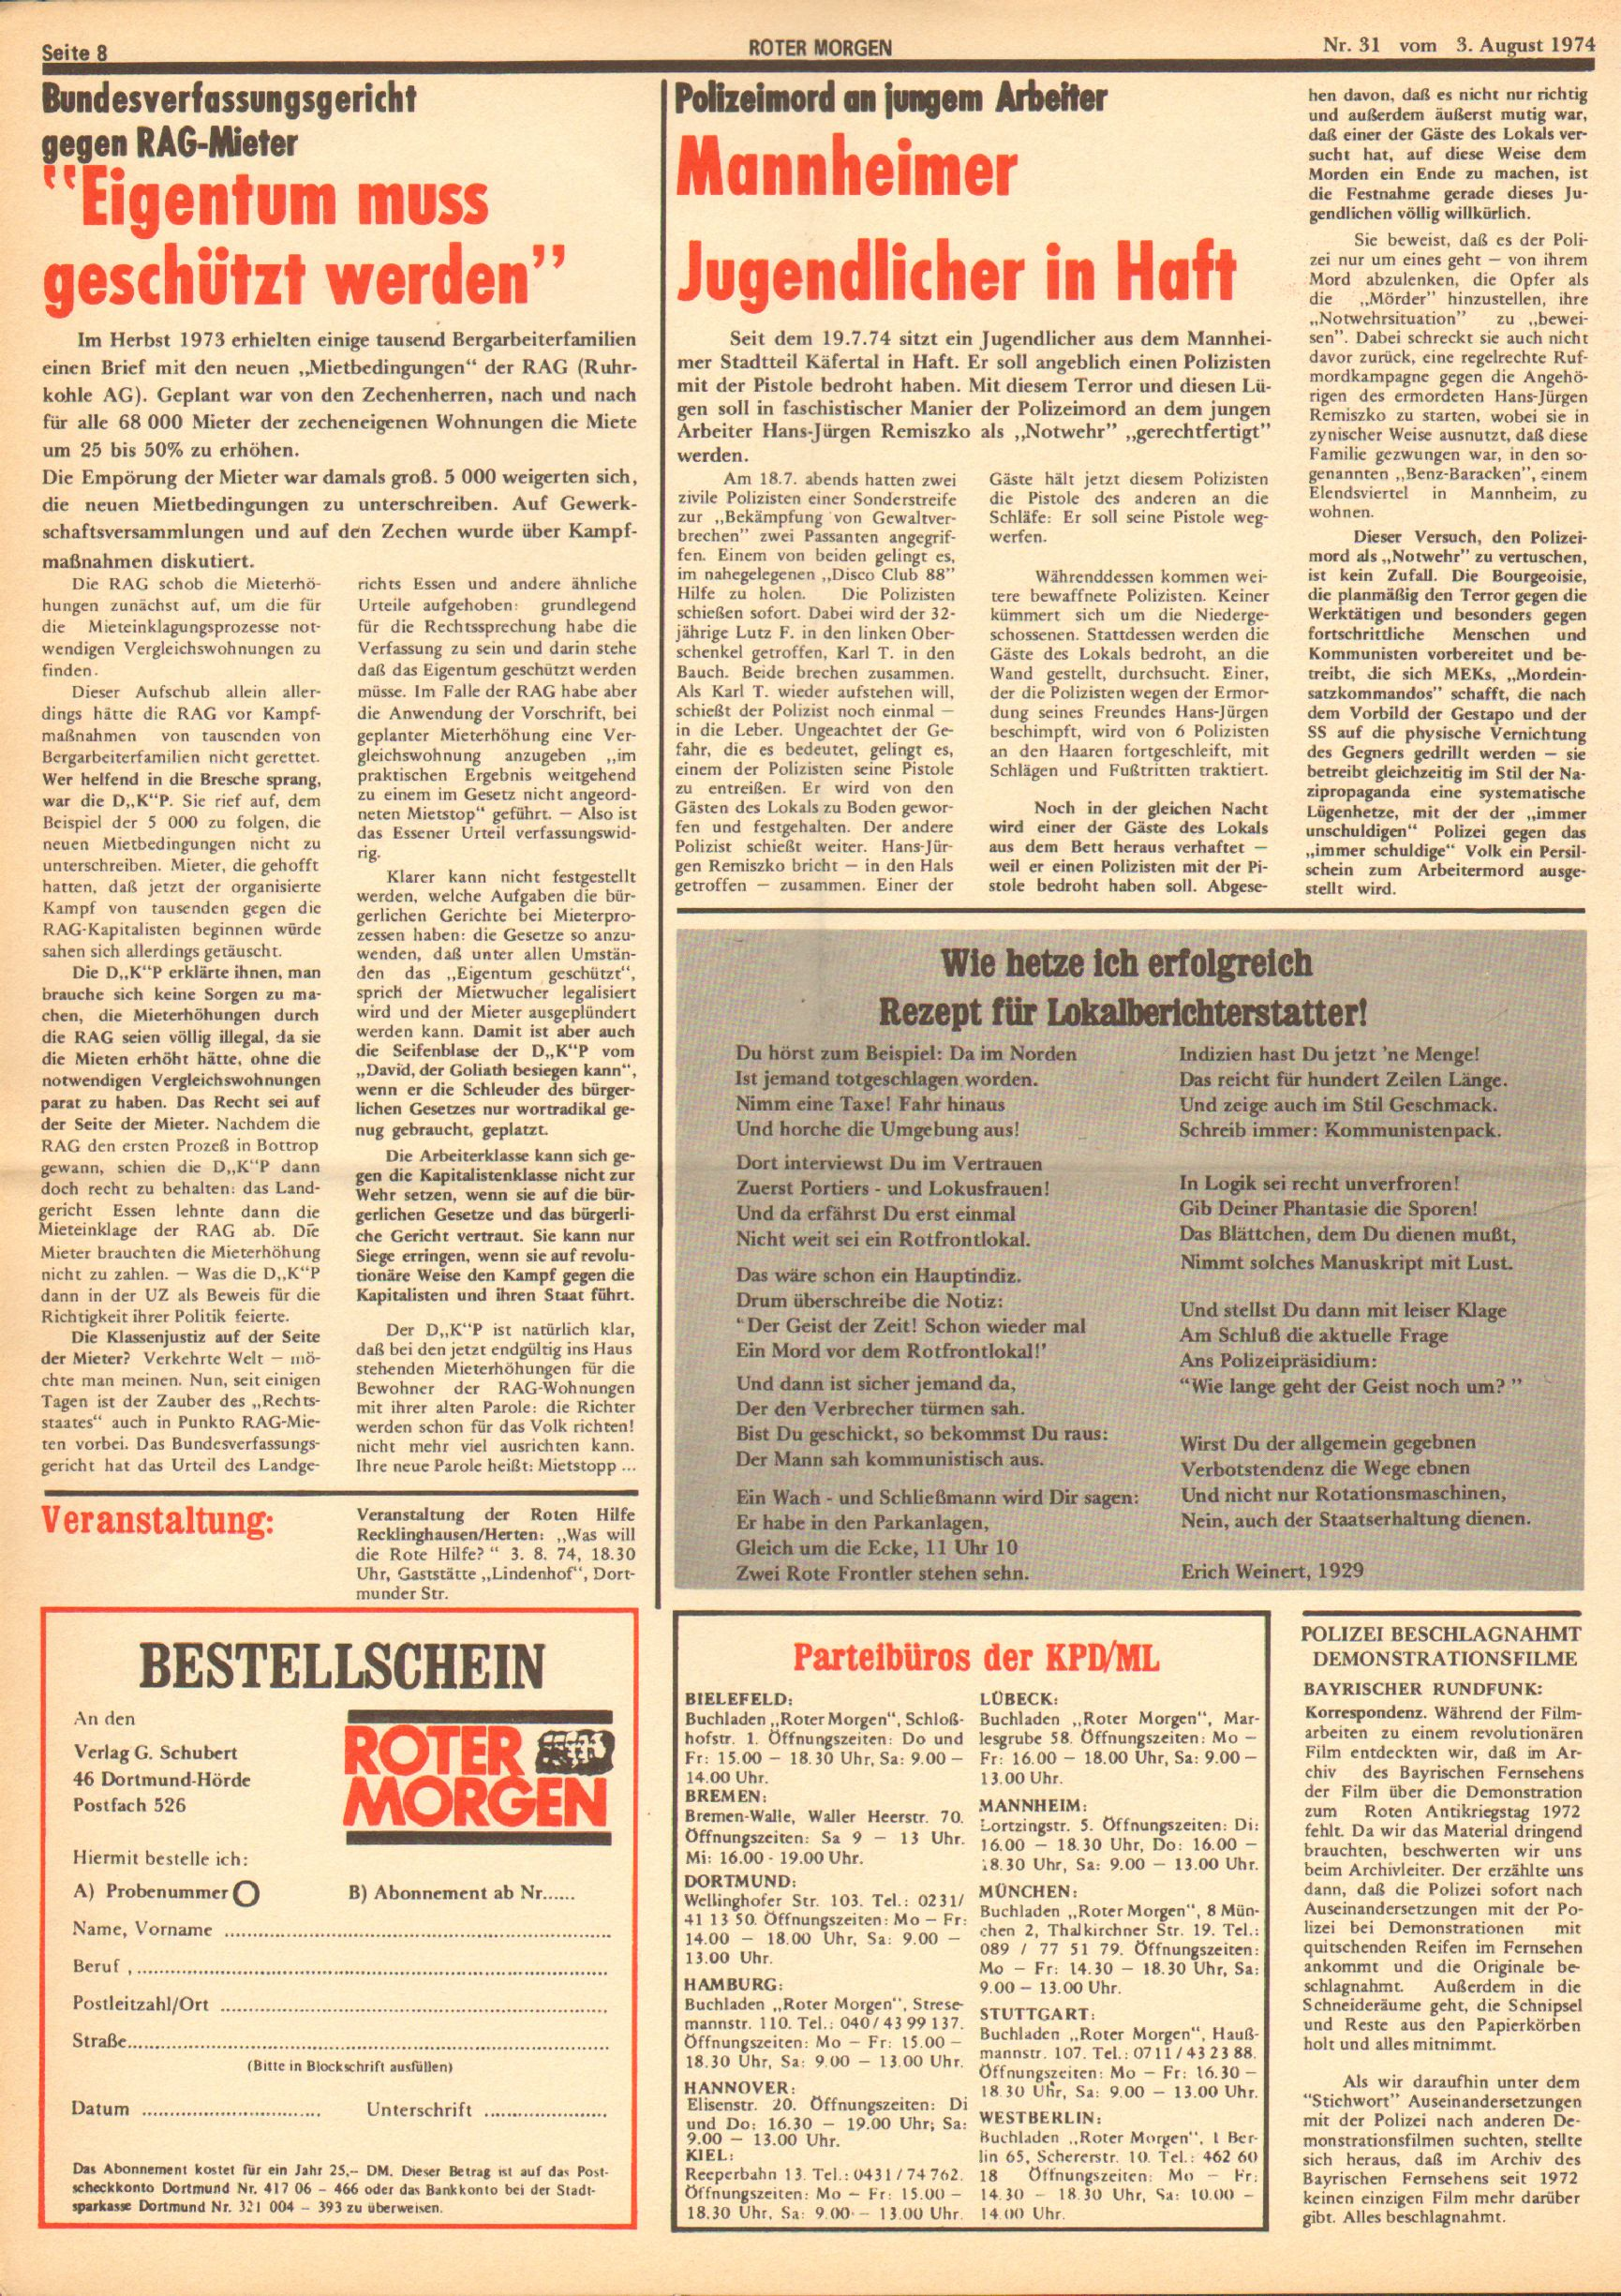 Roter Morgen, 8. Jg., 3. August 1974, Nr. 31, Seite 8